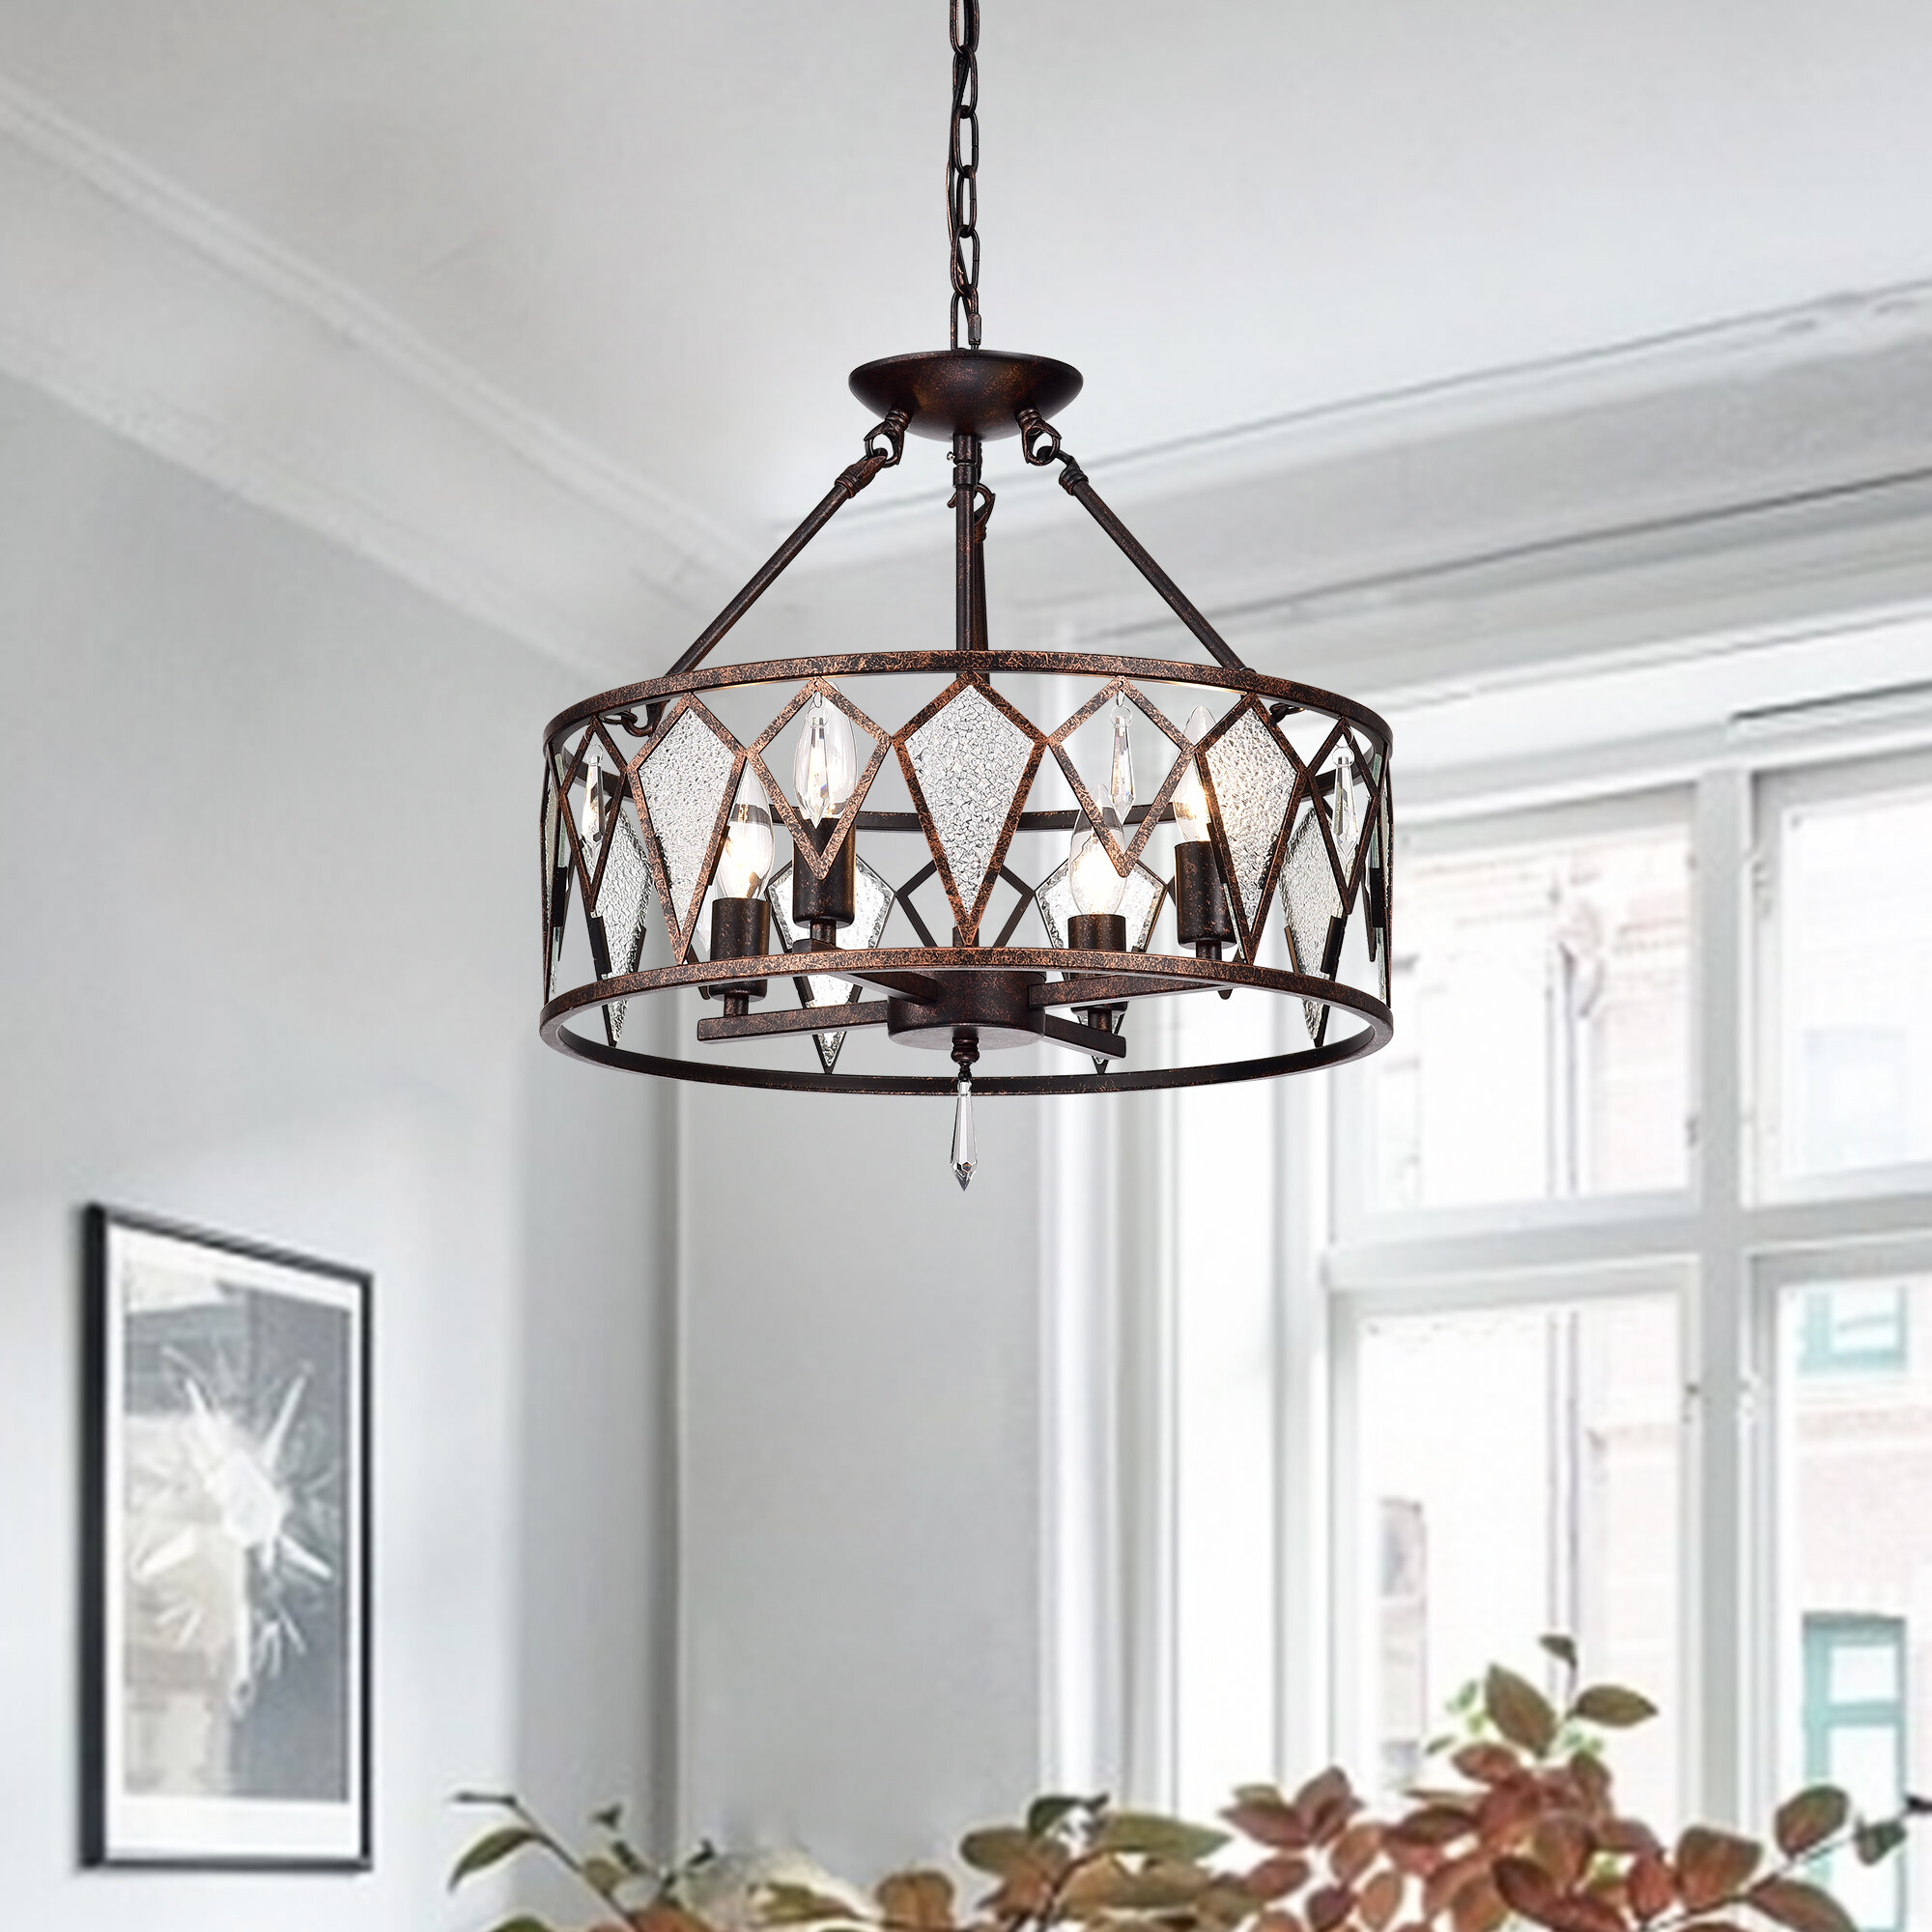 Mistana Cy 4 Light Drum Chandelier With Crystal Accents Reviews Wayfair